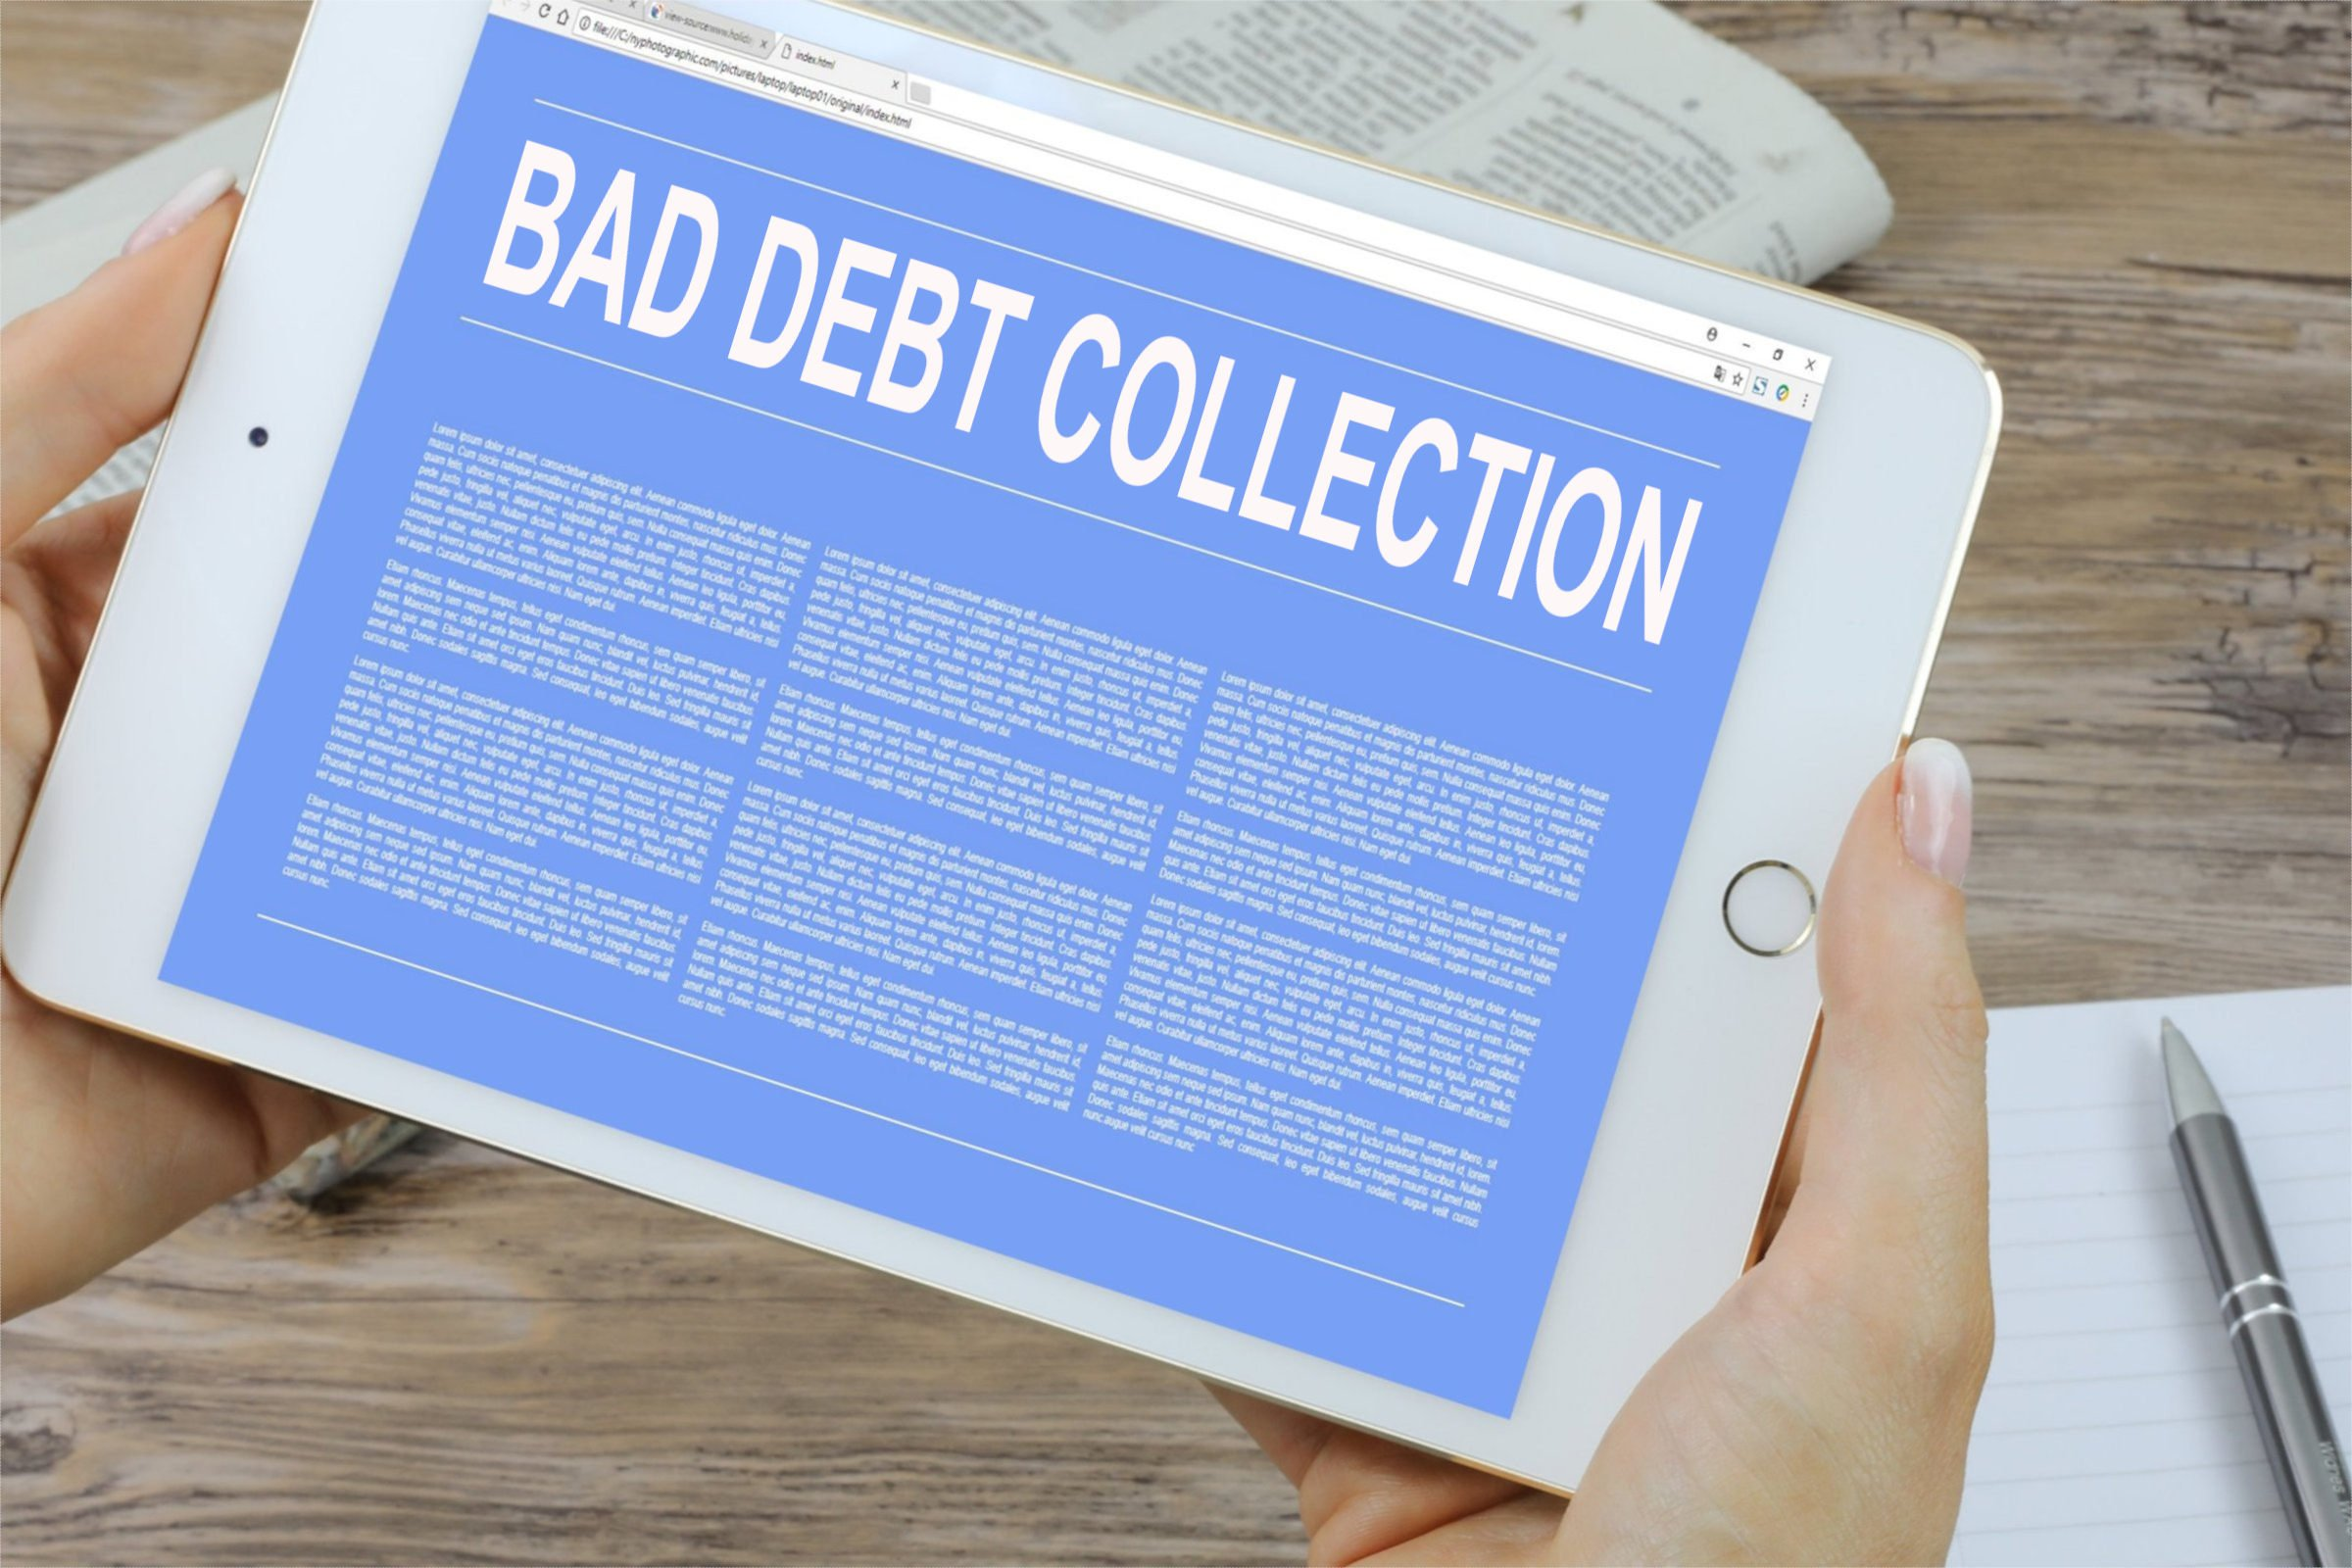 Bad Debt Collection